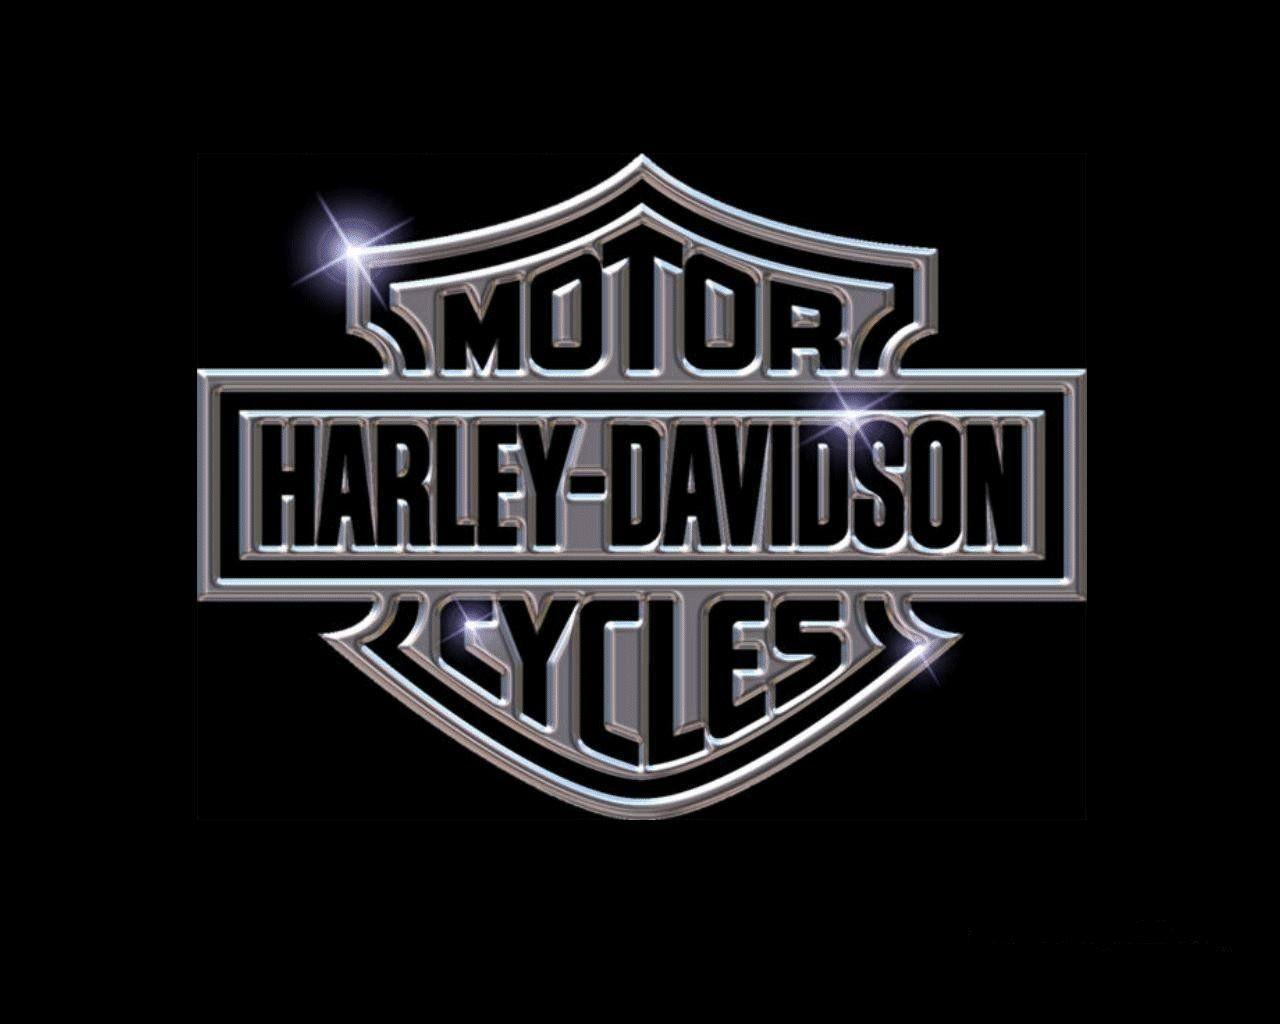 harley davidson logo wallpapers wallpaper cave. Black Bedroom Furniture Sets. Home Design Ideas